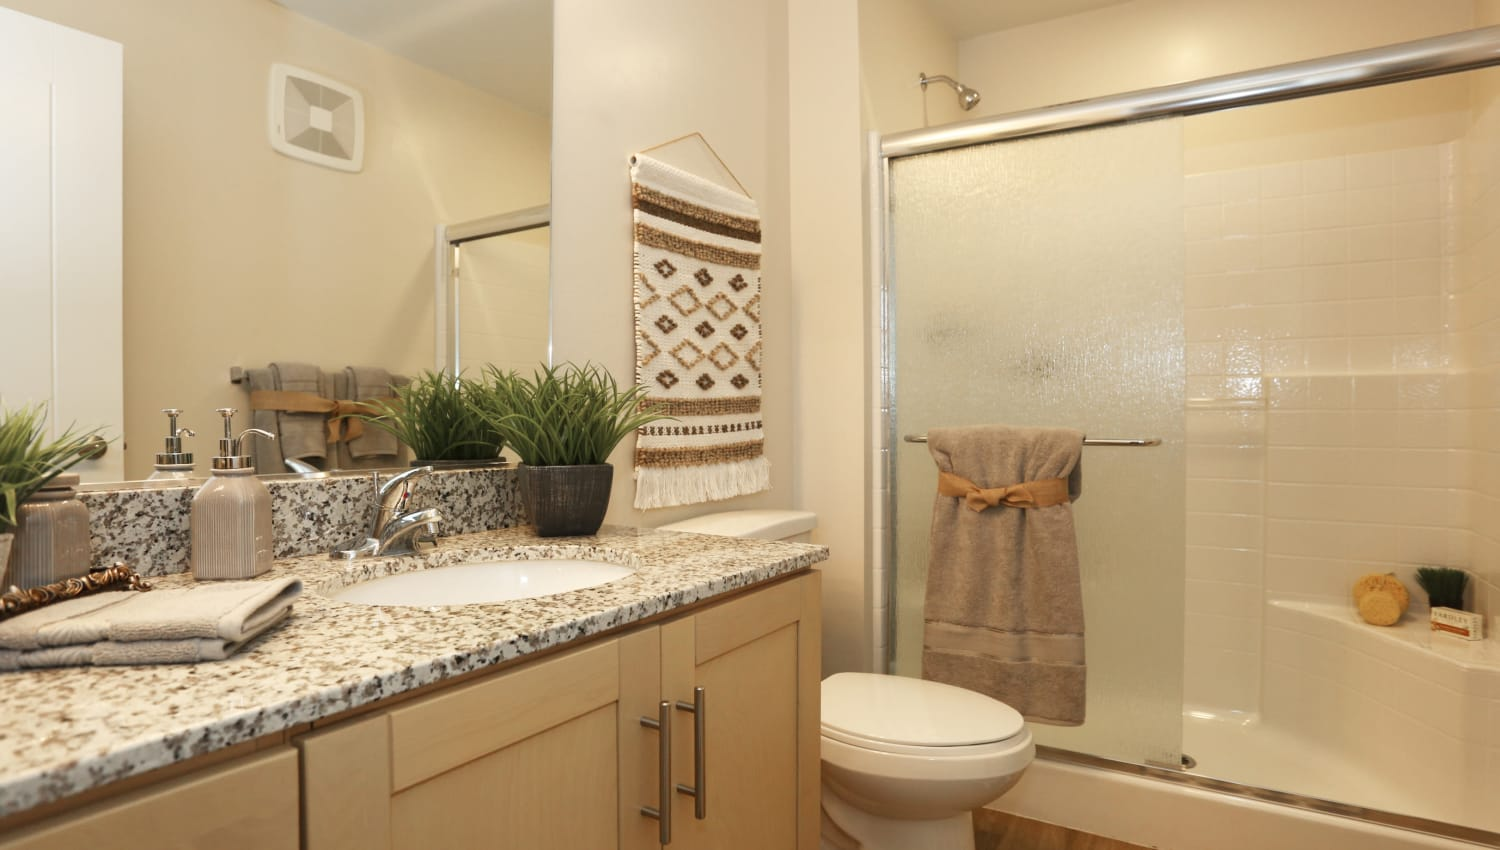 Shower-tub combos in the bathrooms at Mountain Trail in Flagstaff, Arizona